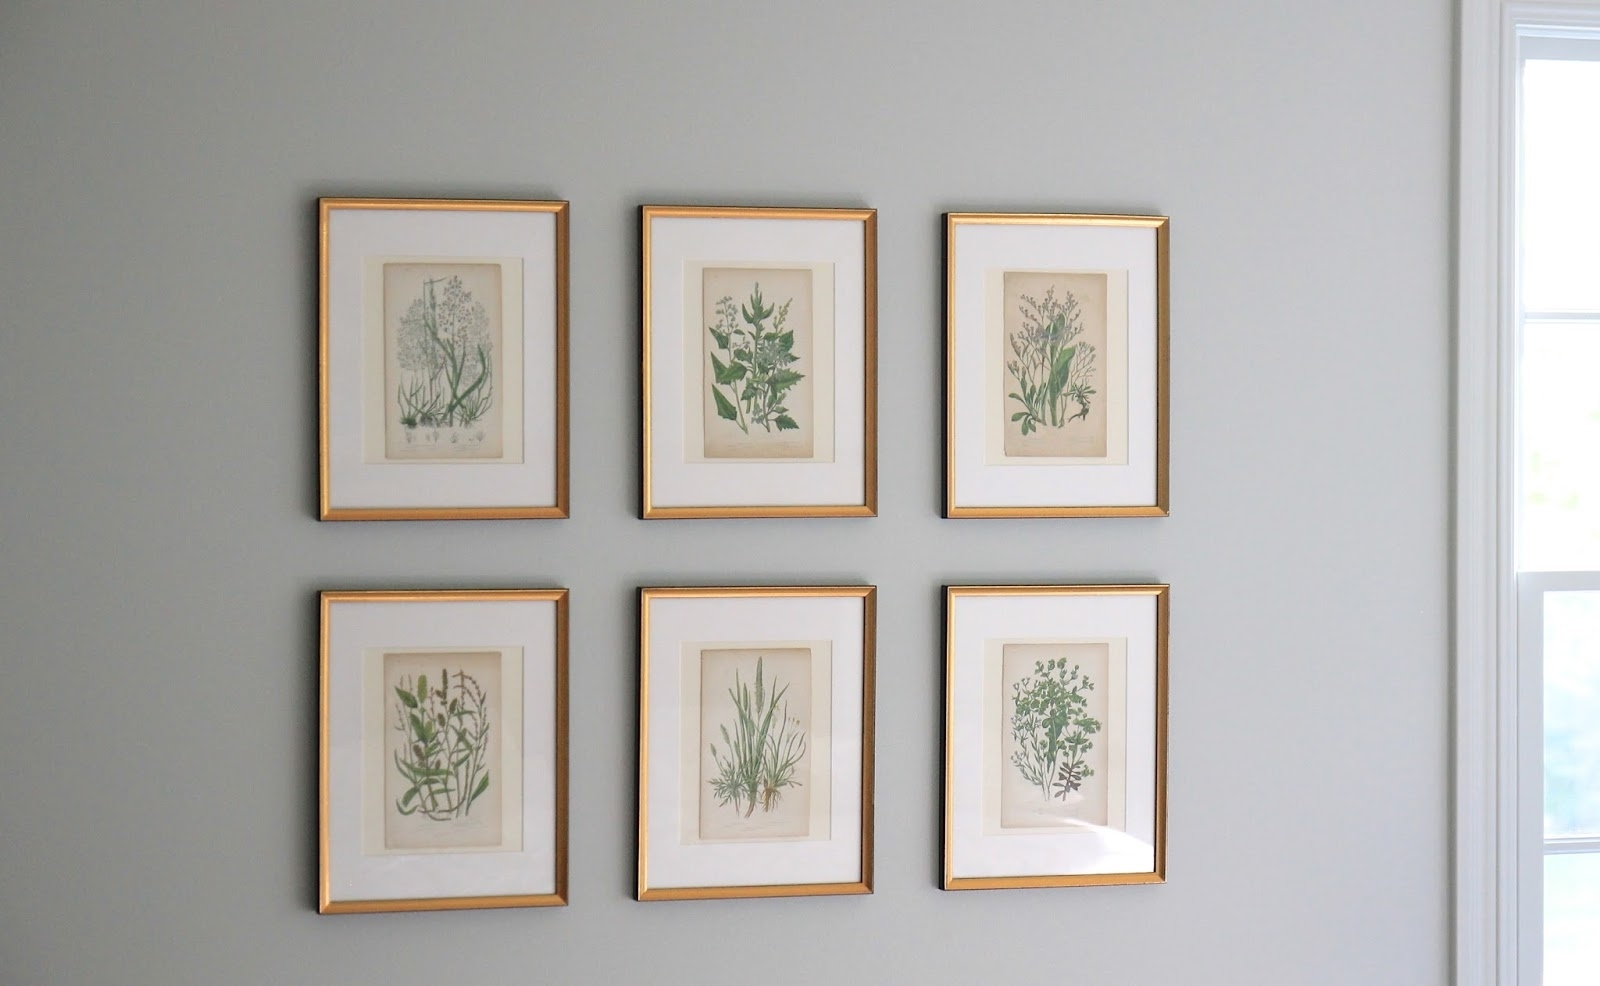 Jenny Steffens Hobick: Framing Botanicals, Antique Mirror Find Throughout Well Liked Antique Framed Art Prints (View 8 of 15)